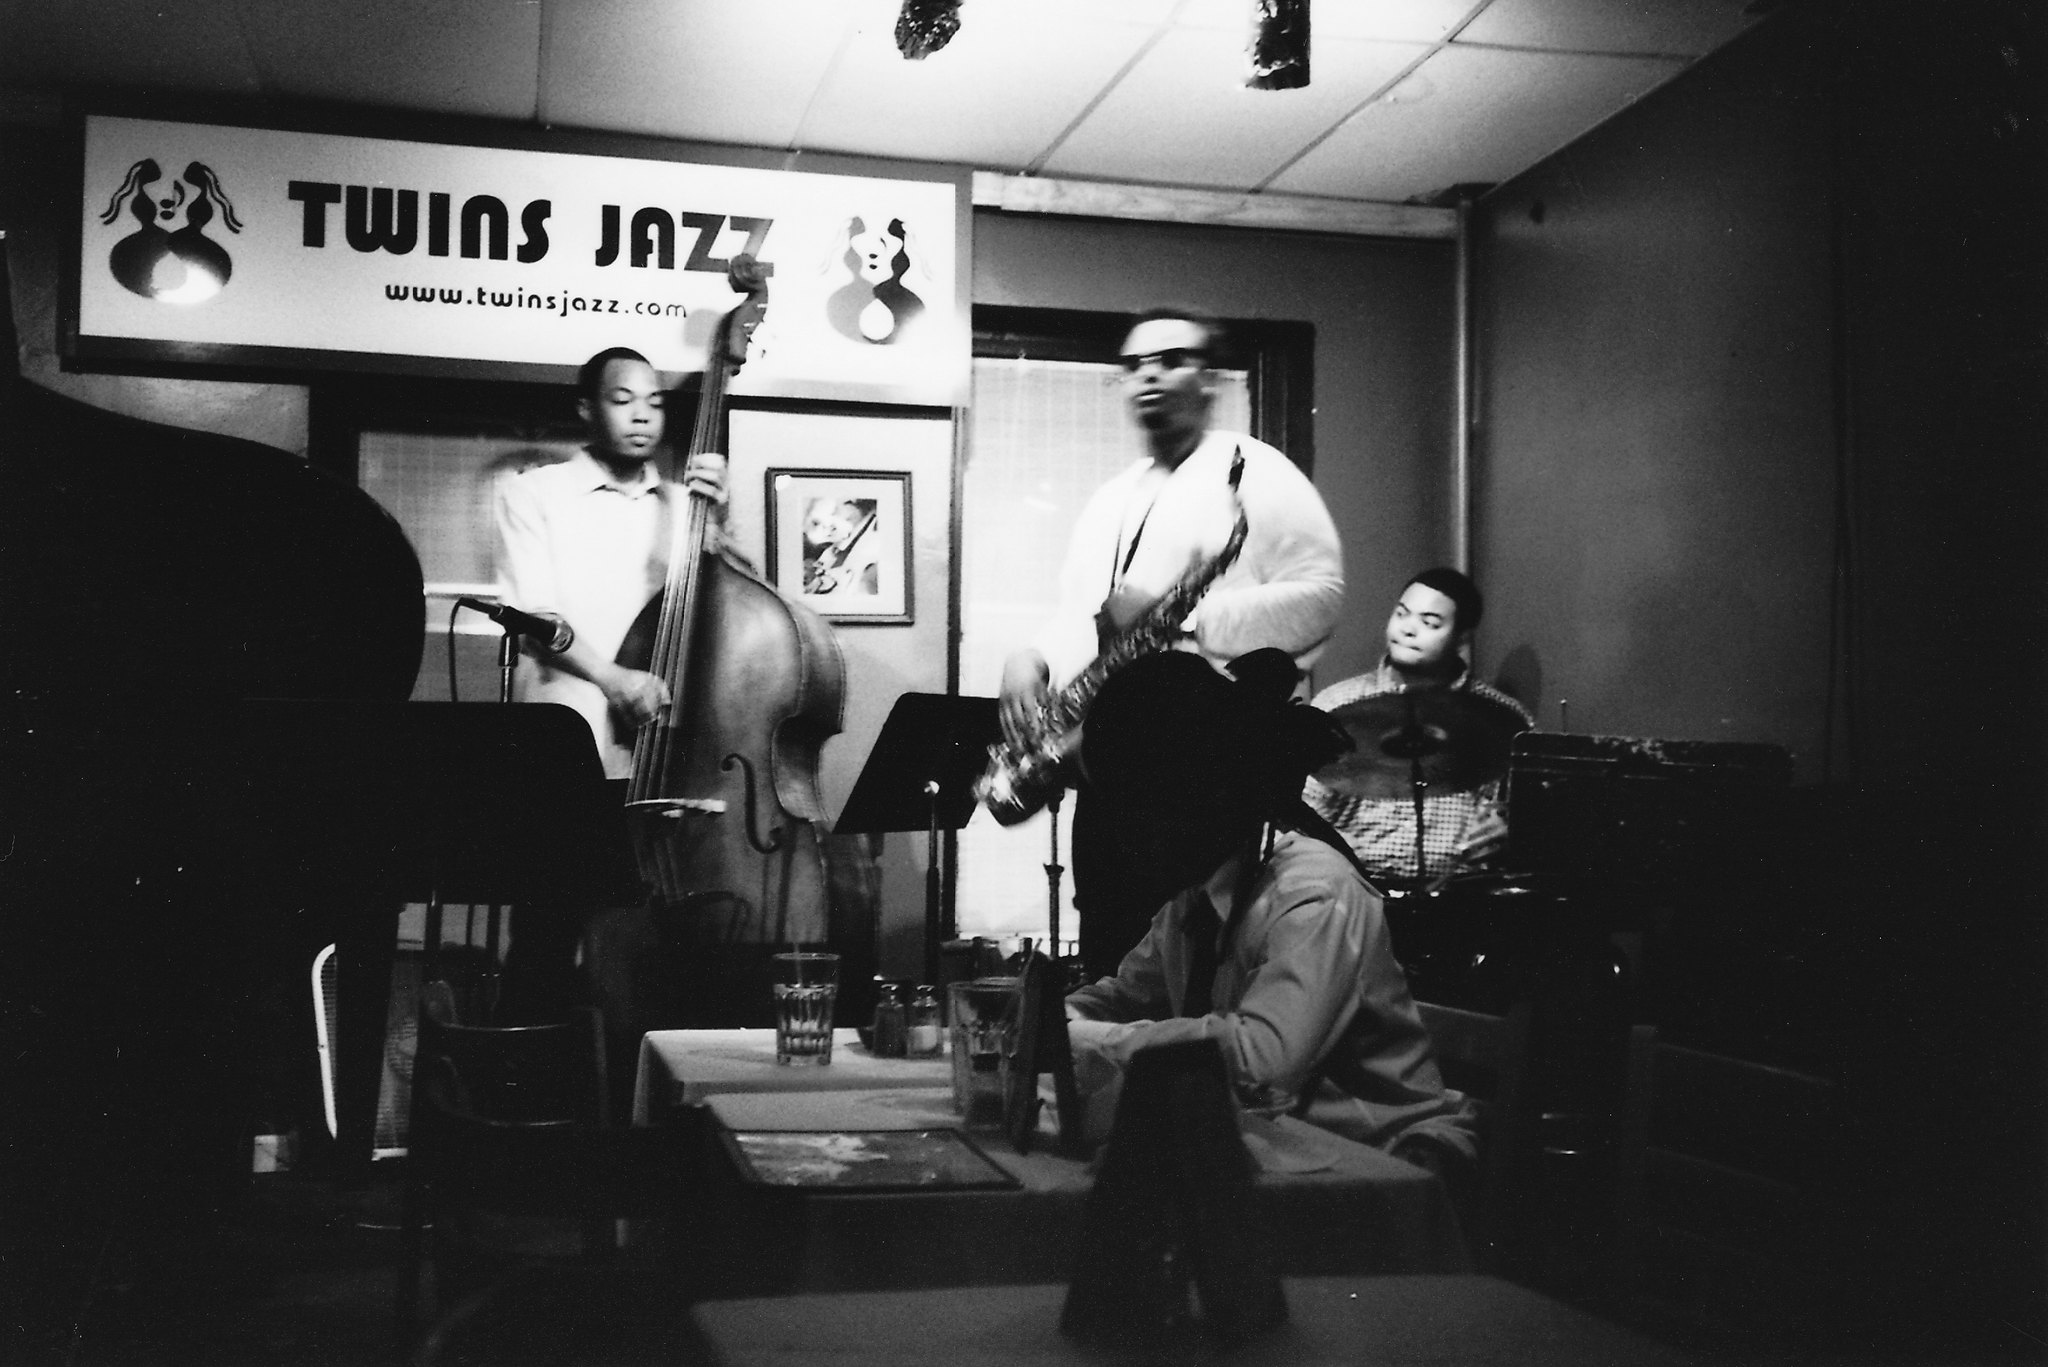 Performers at Twins jazz